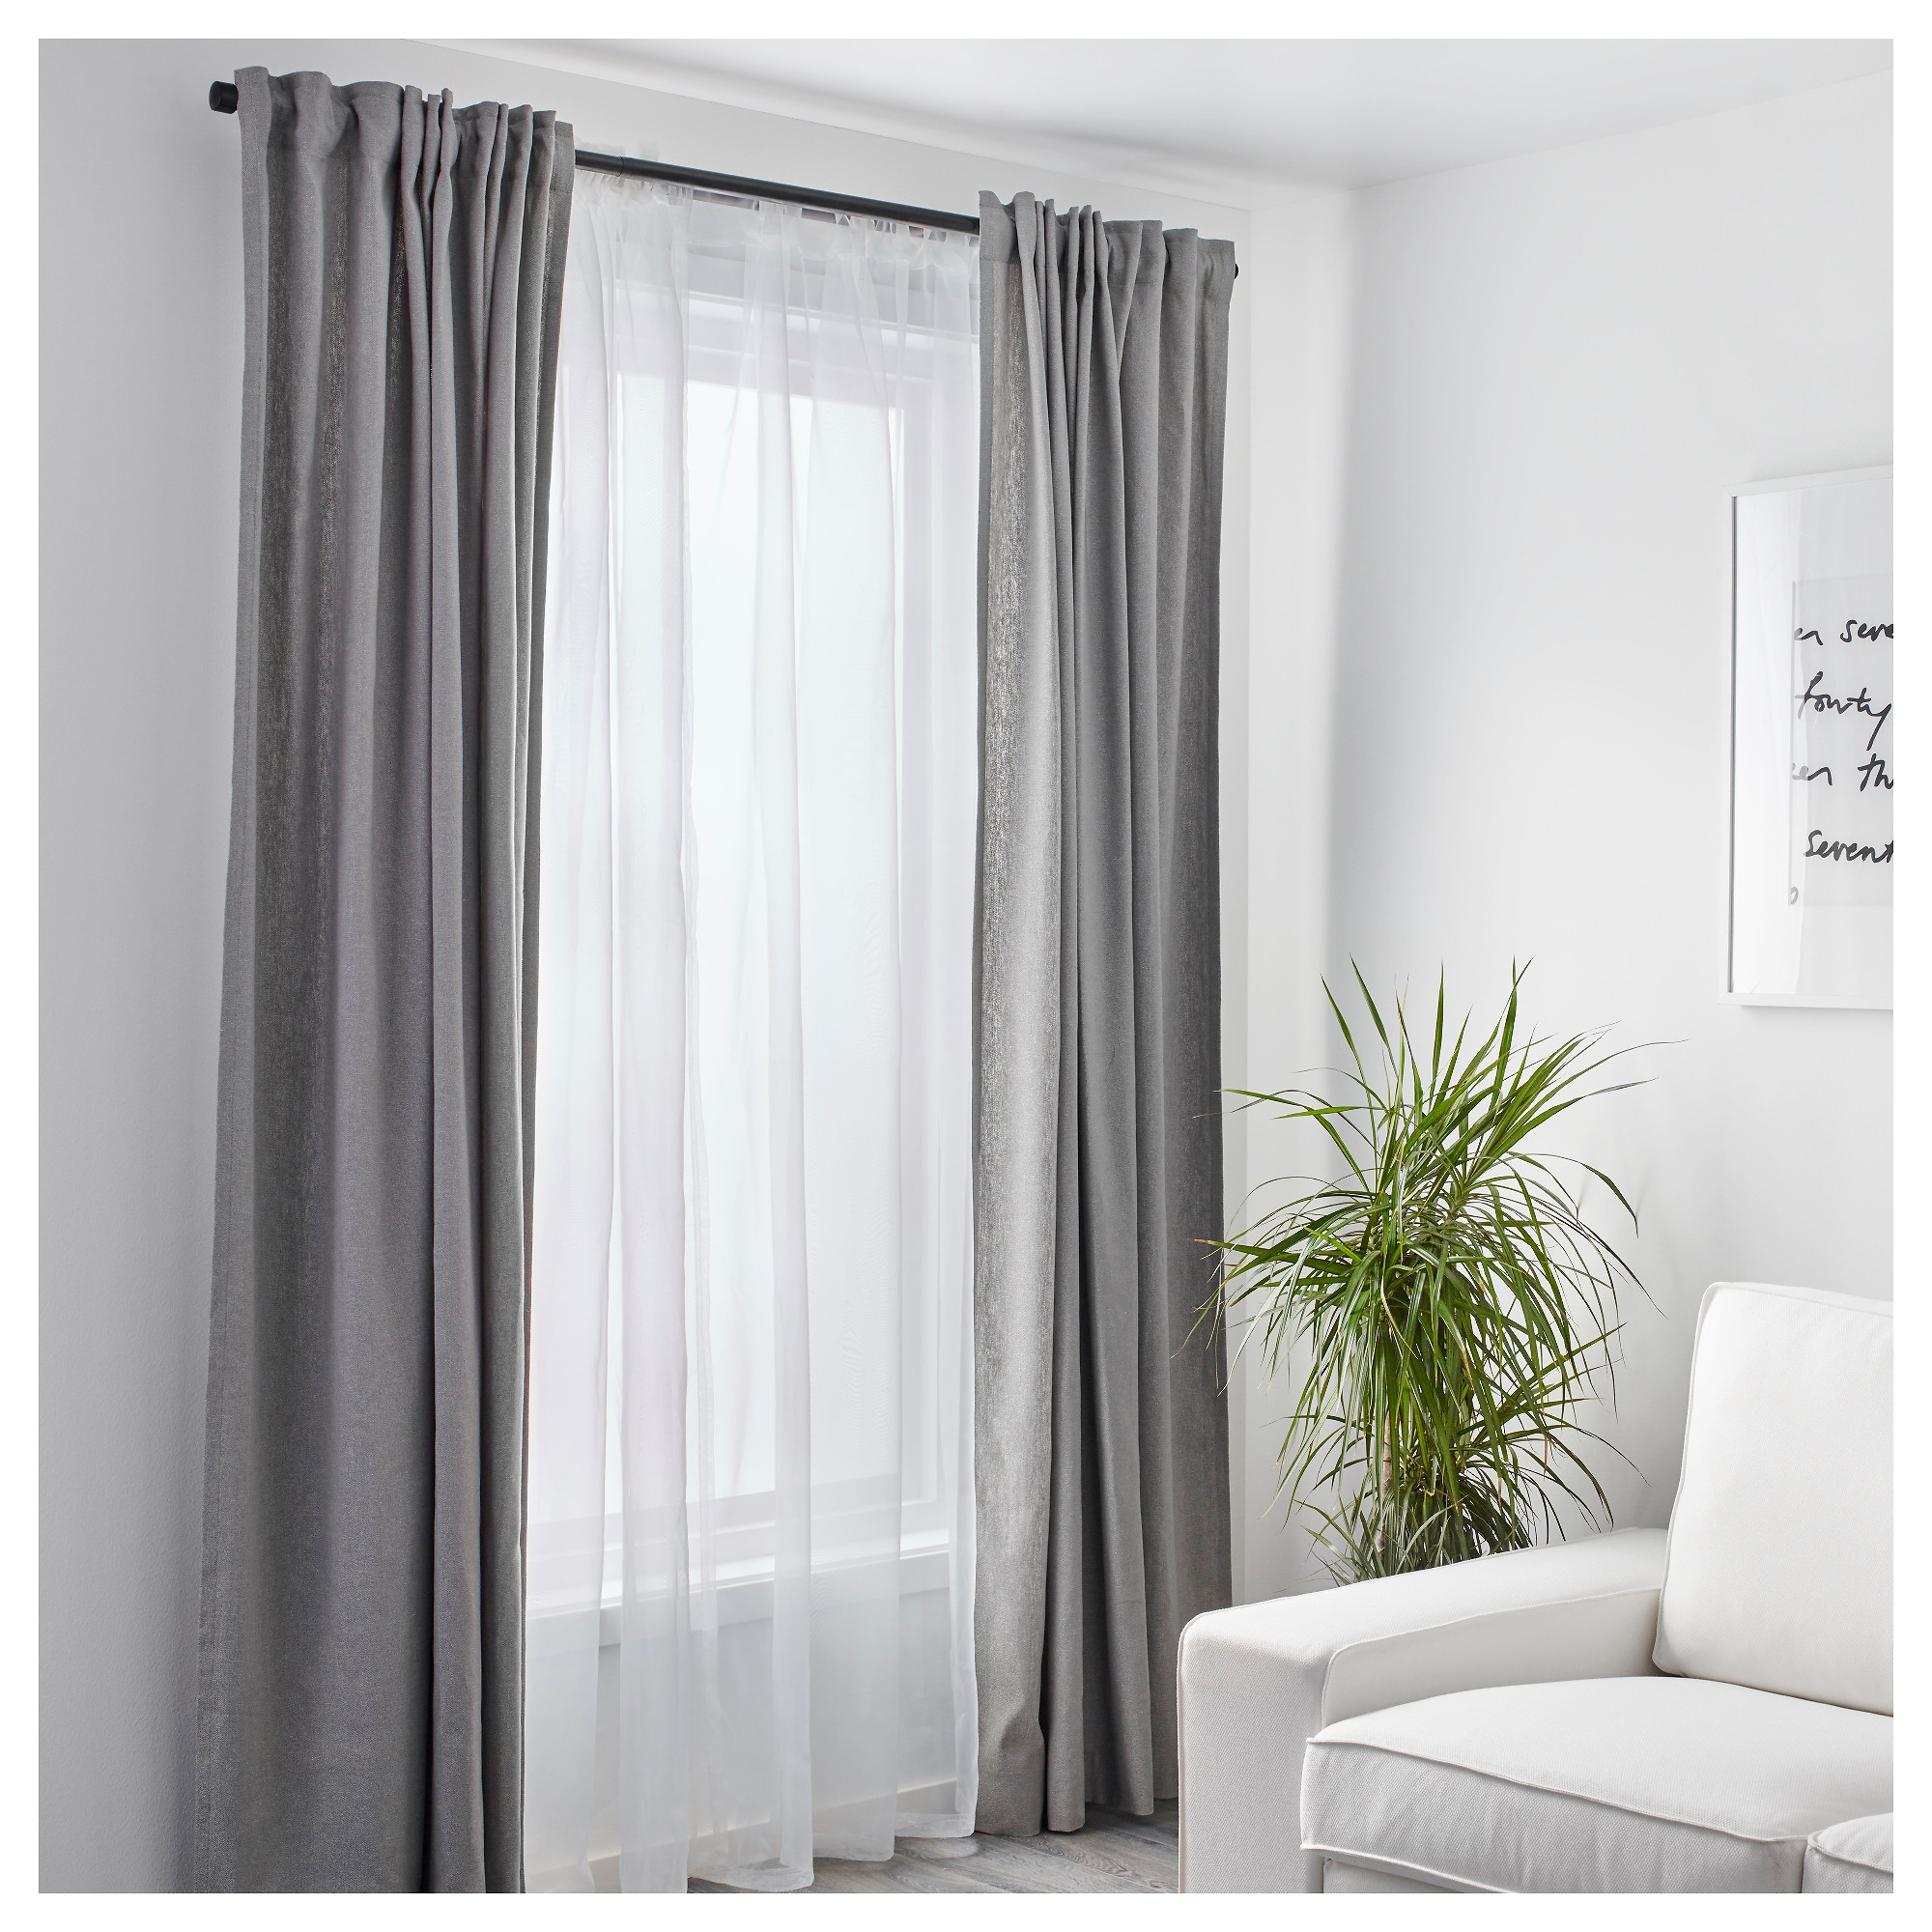 Teresia Sheer Curtains 1 Pair Ikea For Curtain Sheers (View 19 of 25)